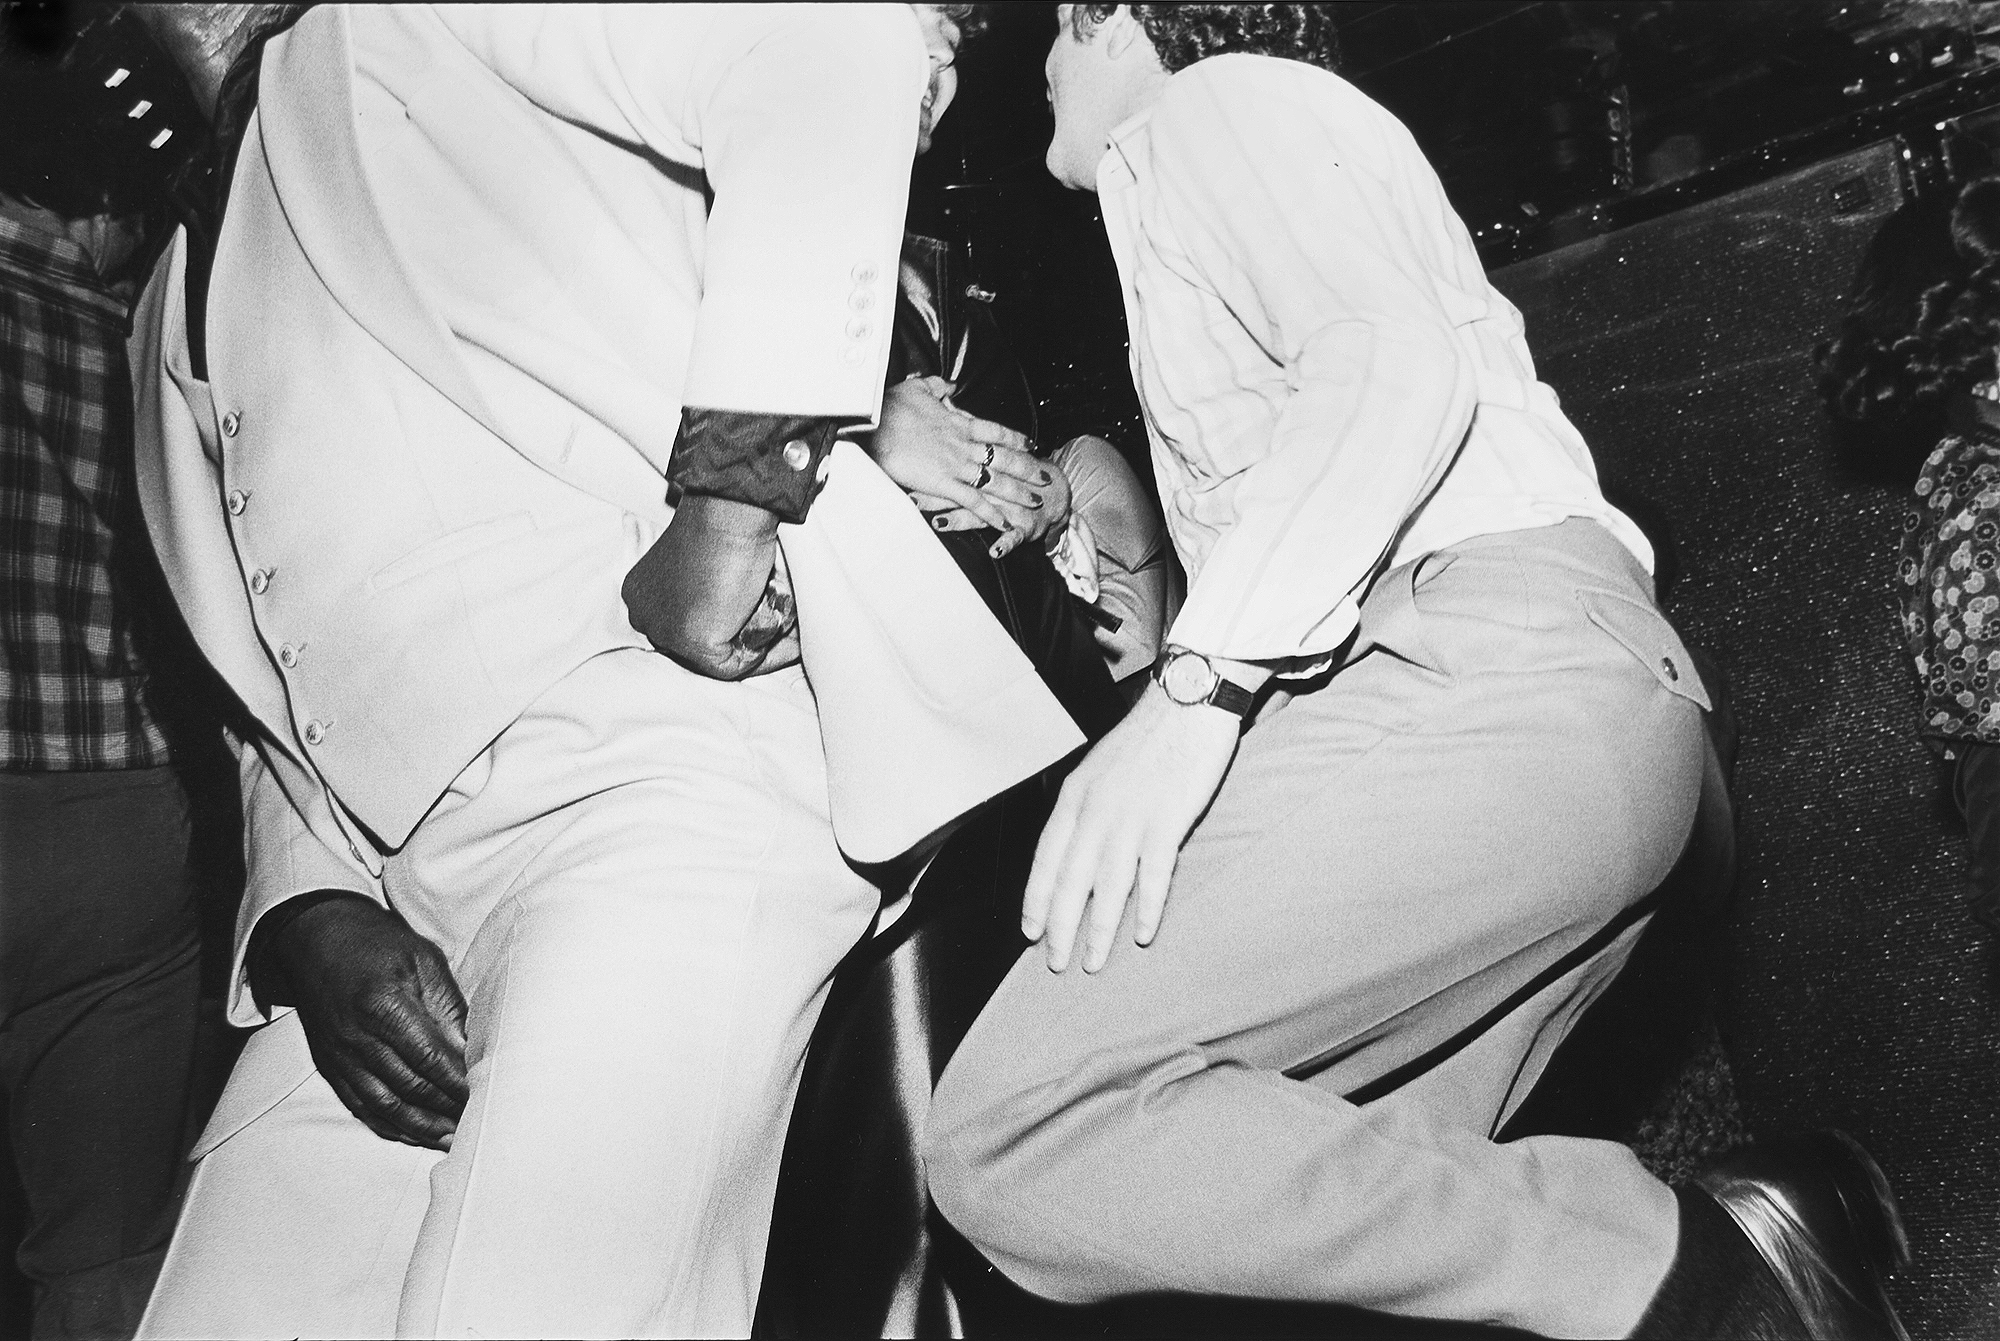 Tony_Ward_photography_early_work_Night_Fever_portfolio_1970's_erotic_dirty_dancing_couples_grinding_suits